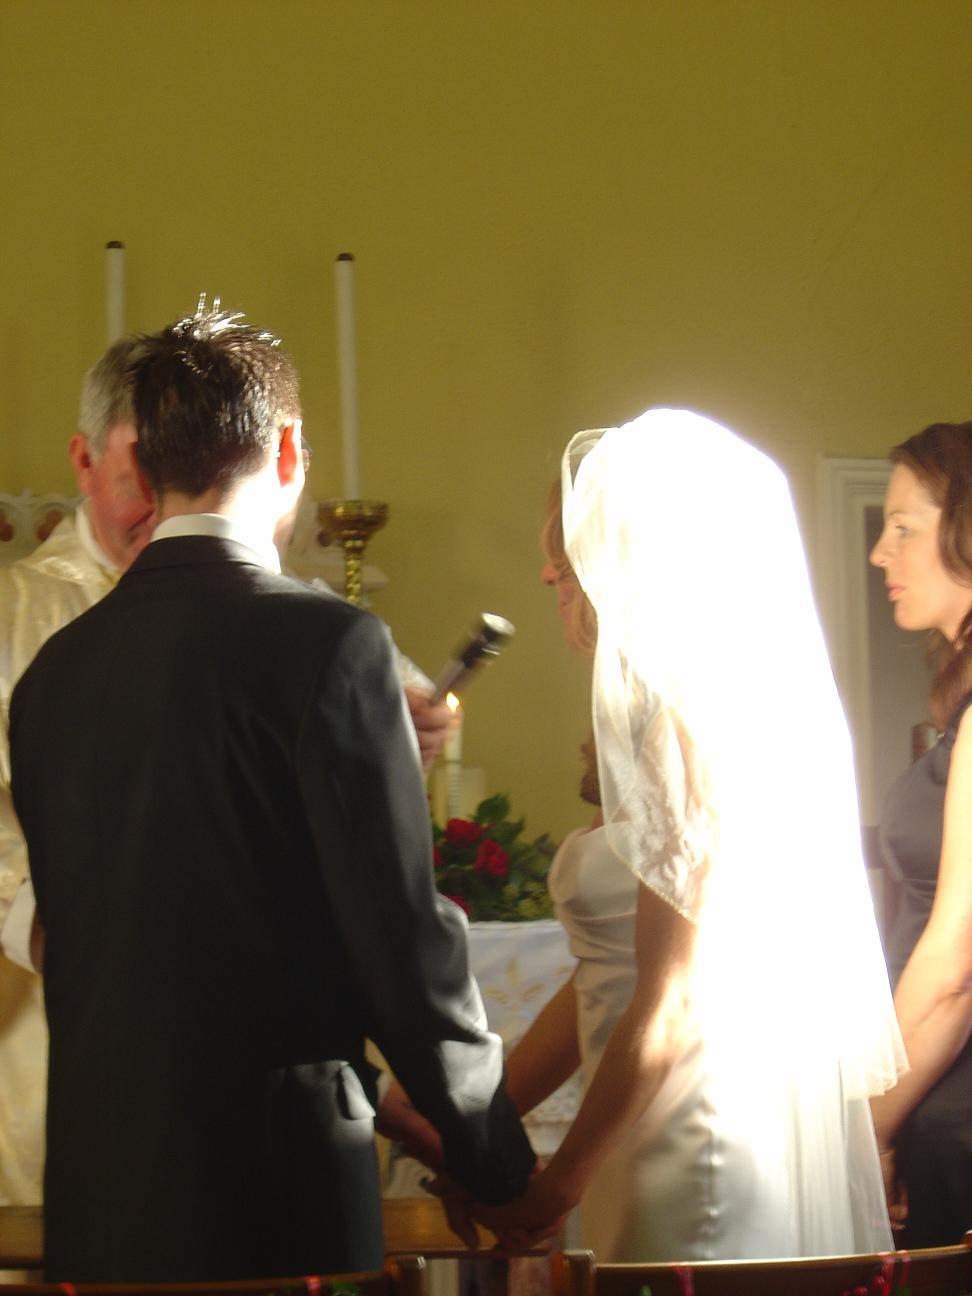 Album: 2006-12-Peter-and-Niamhs-Wedding: wicklow church 32